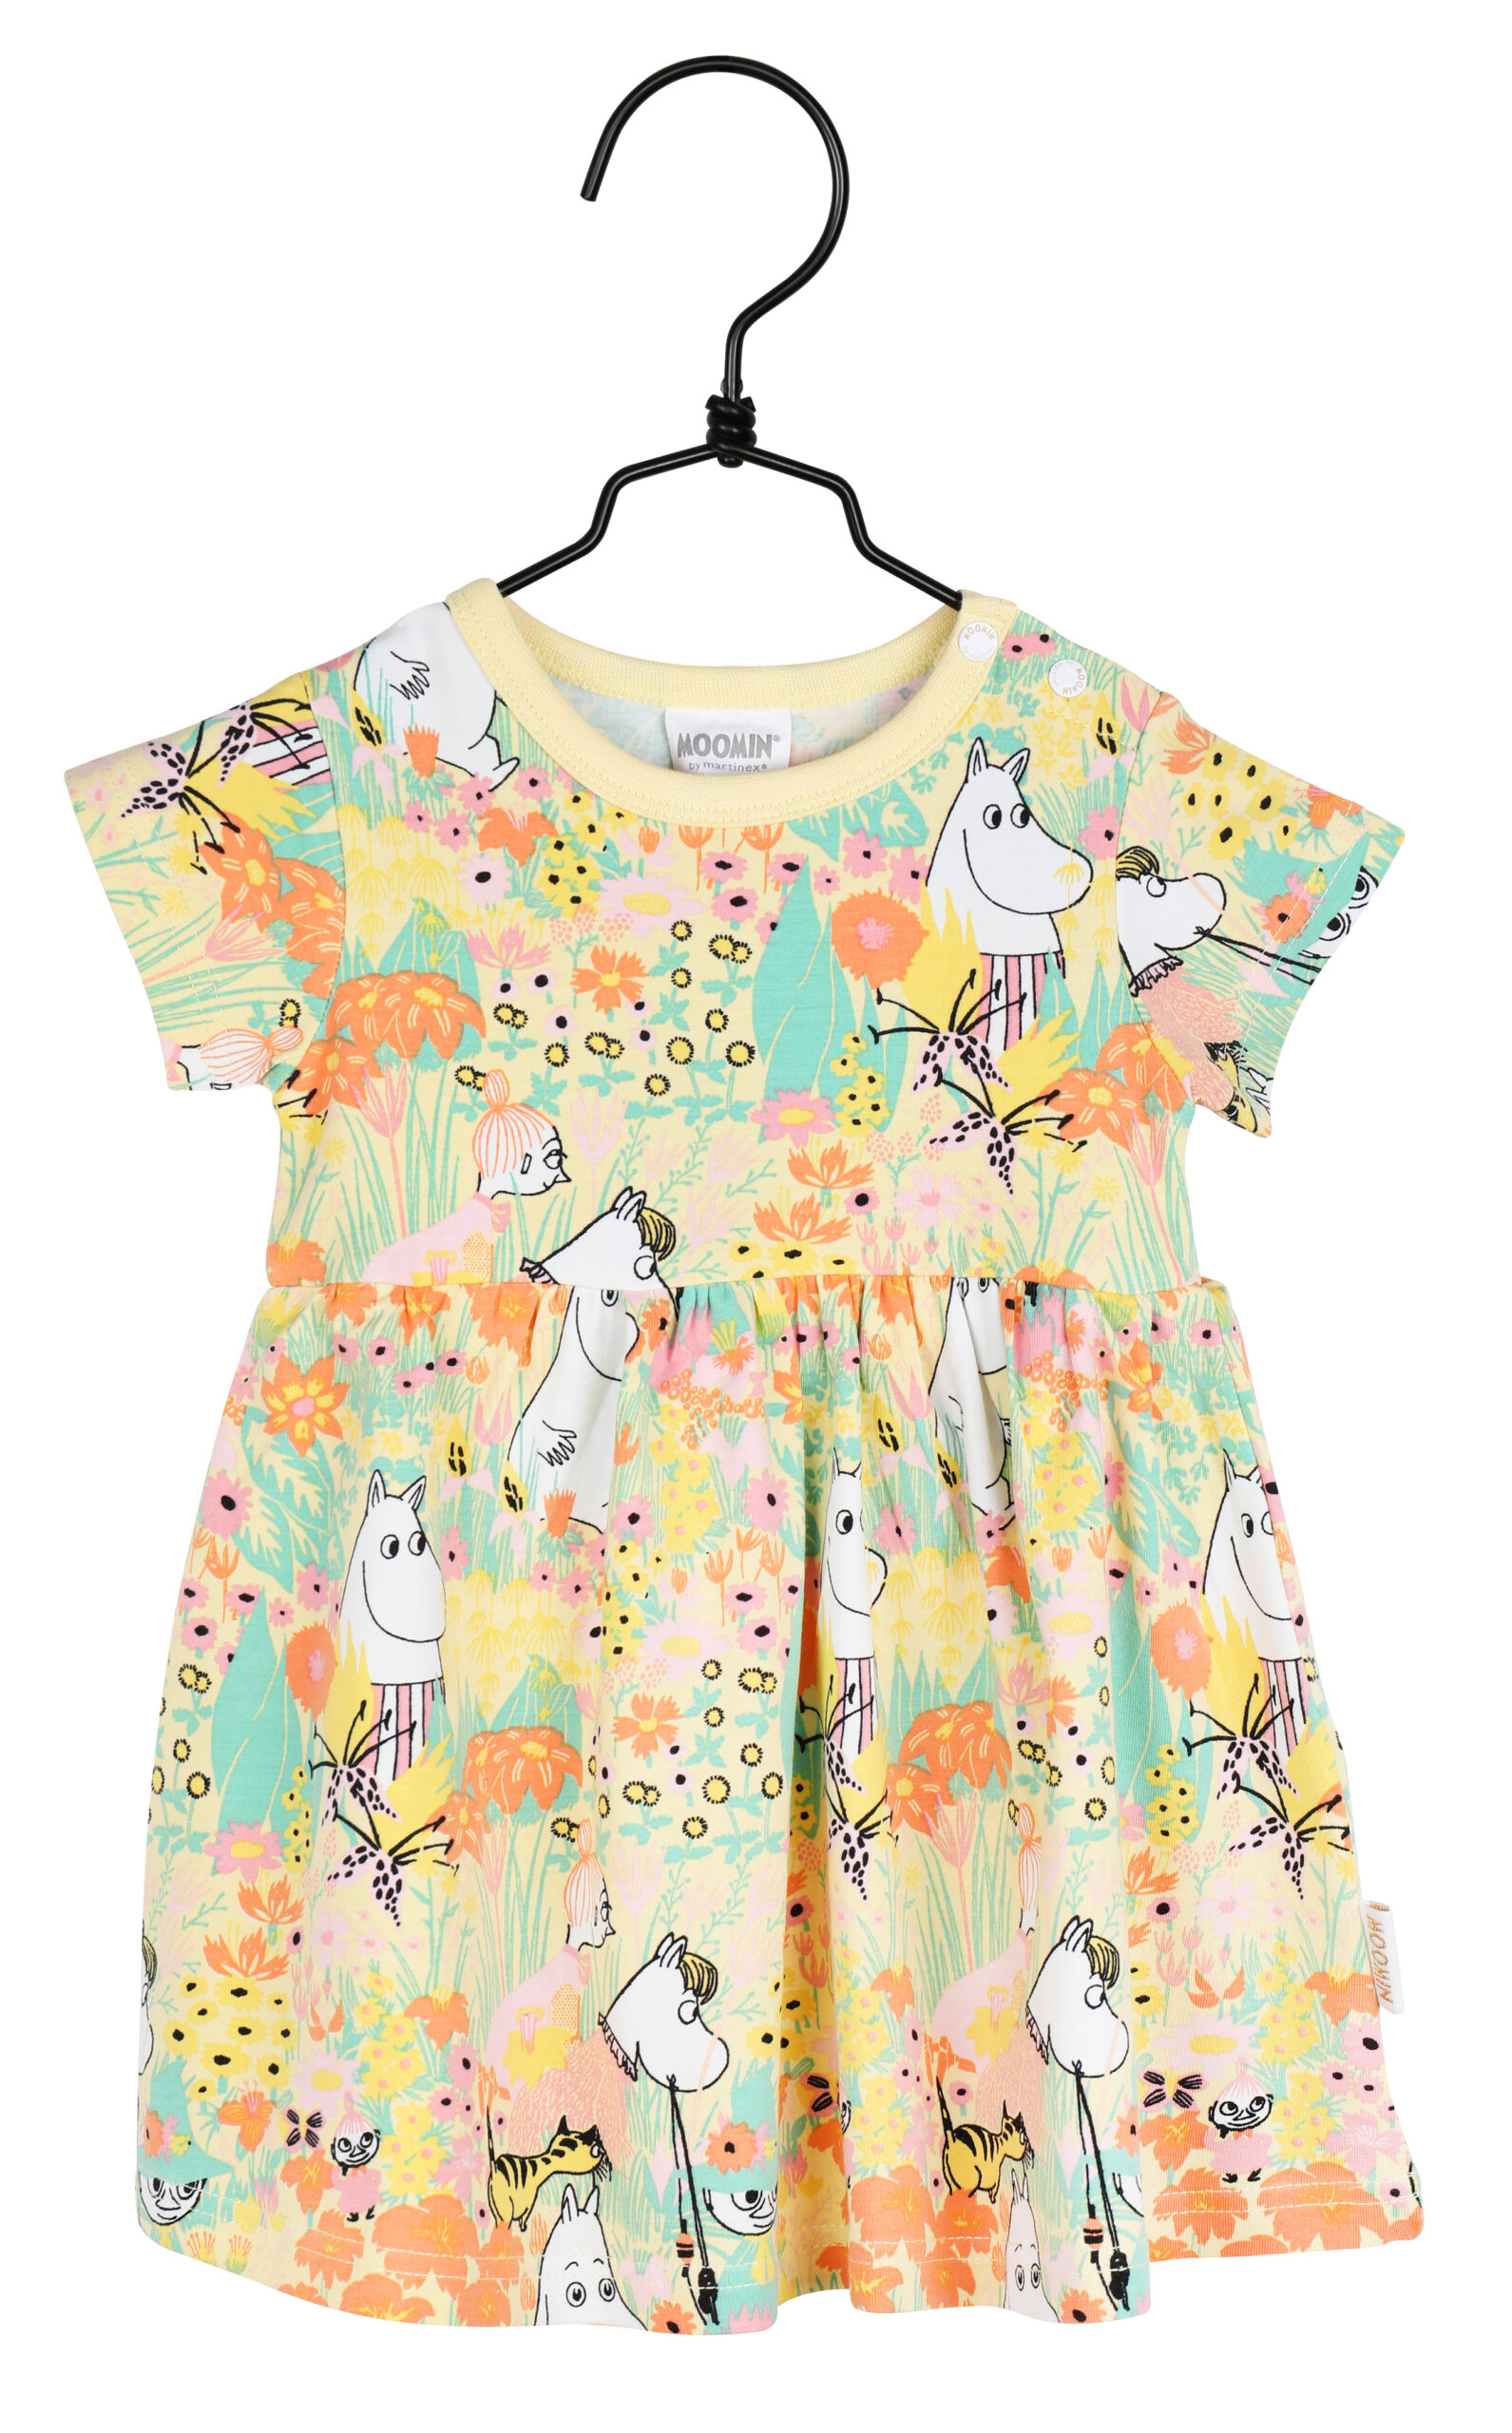 Martinex Moomin Buttercup Bodysuit Dress Yellow